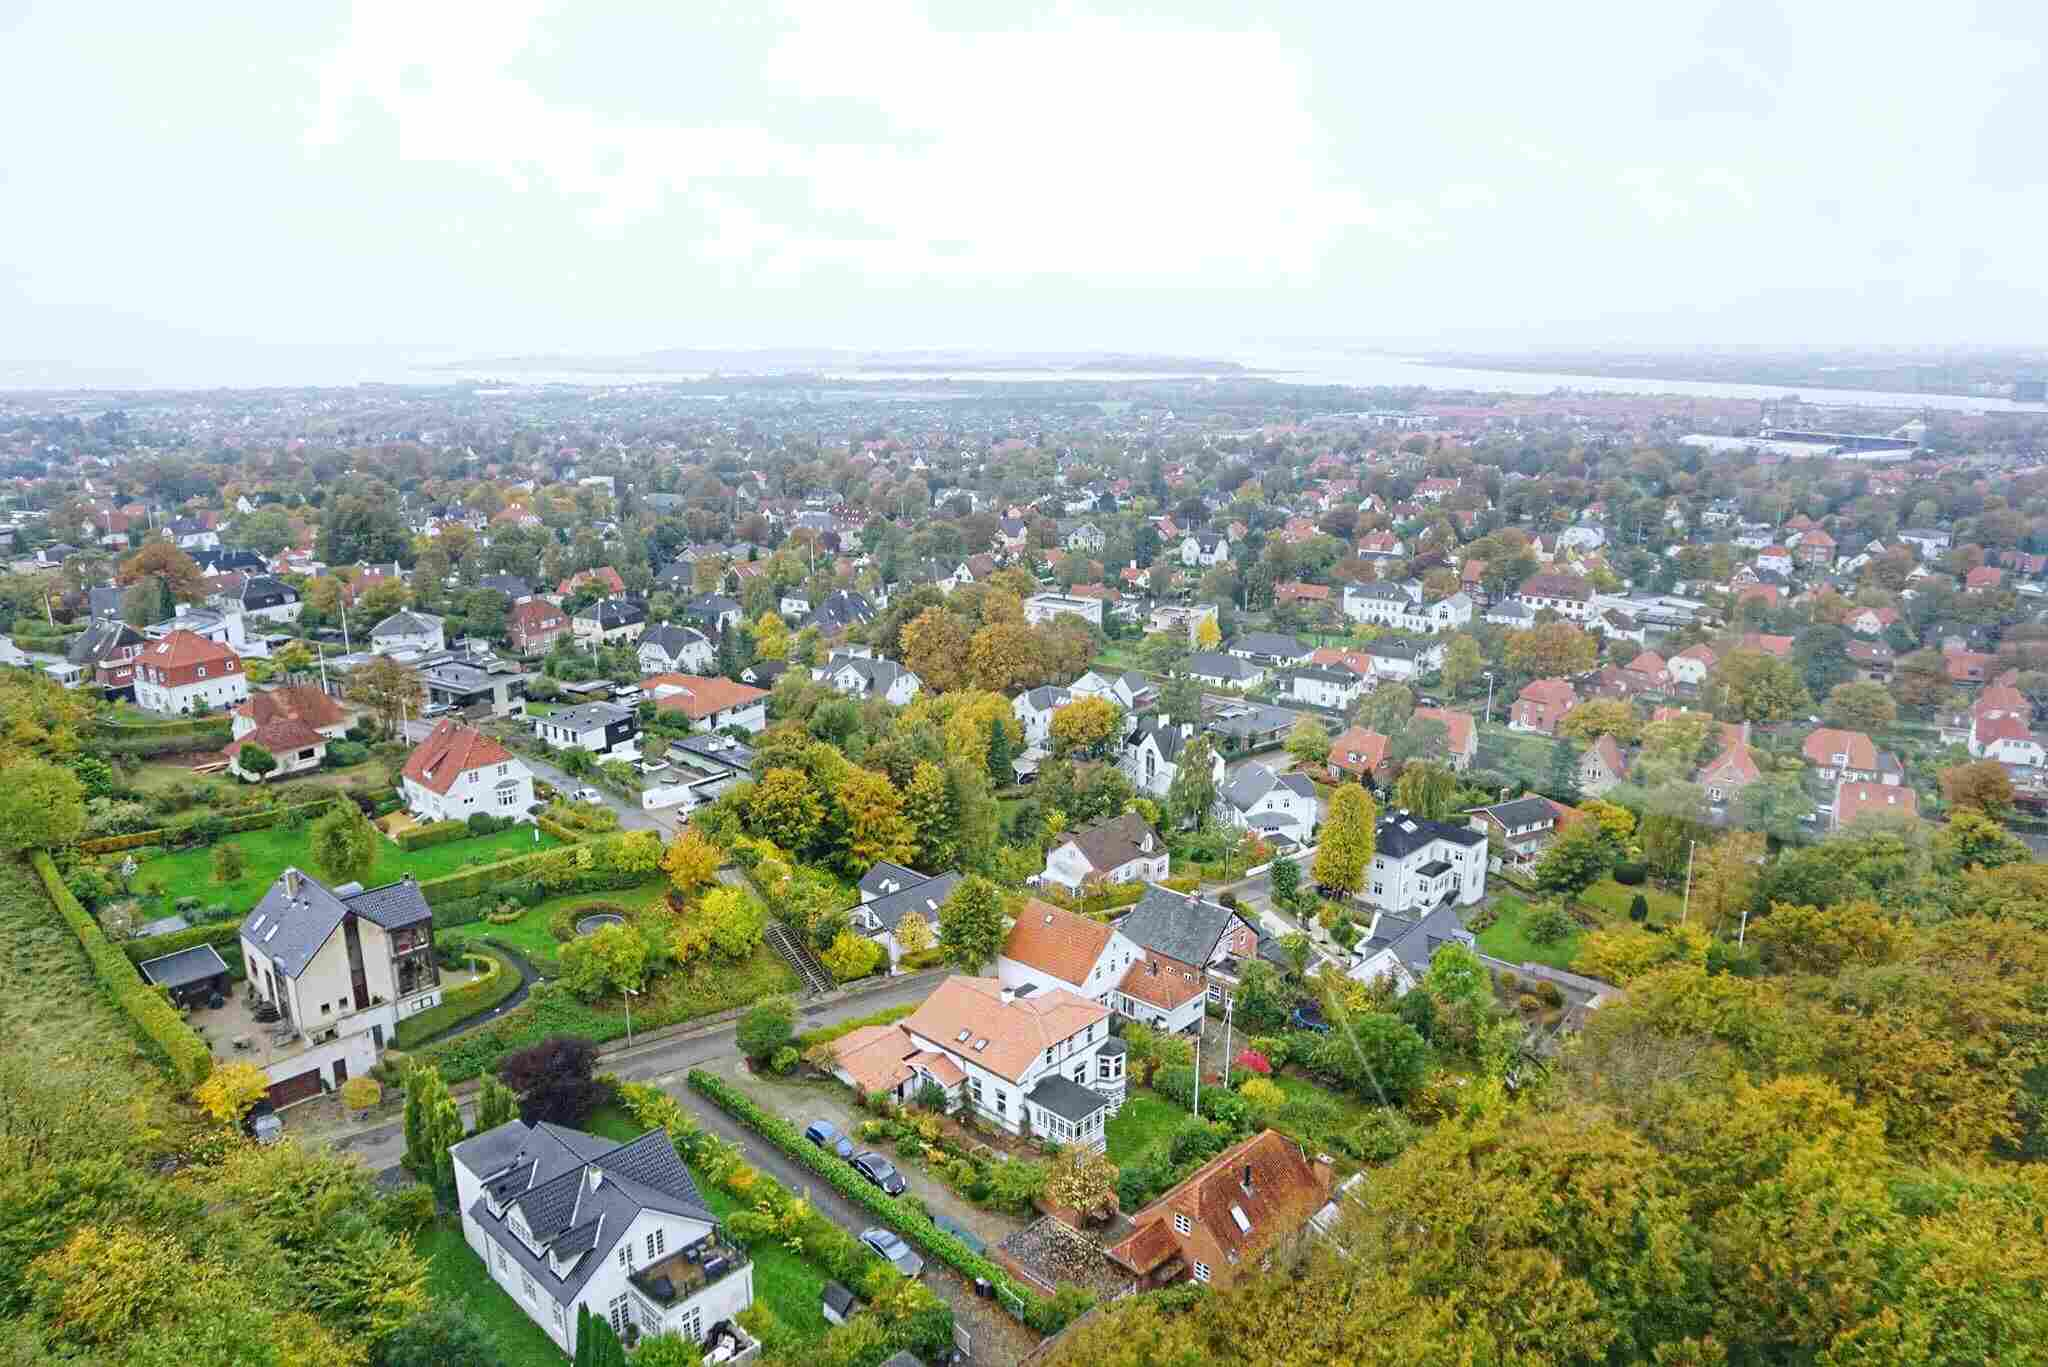 High Angle View Of Townscape Against Sky in Aalborg